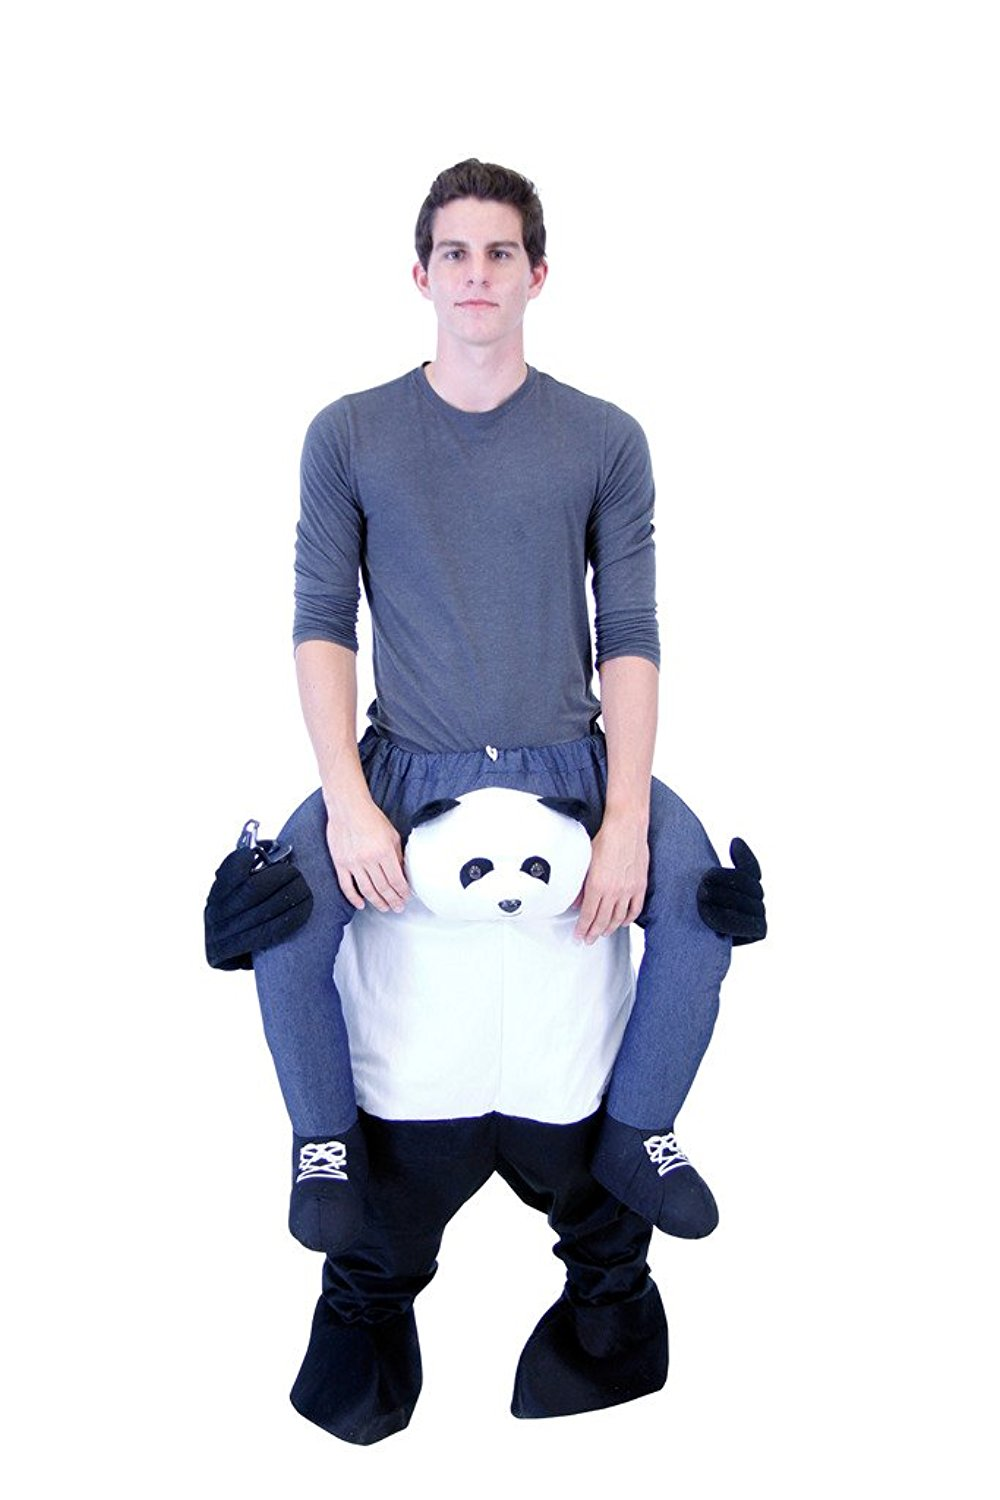 Piggyback Ride On Adult Panda Costume  sc 1 st  Walmart.com & Piggyback Ride On Adult Panda Costume - Walmart.com